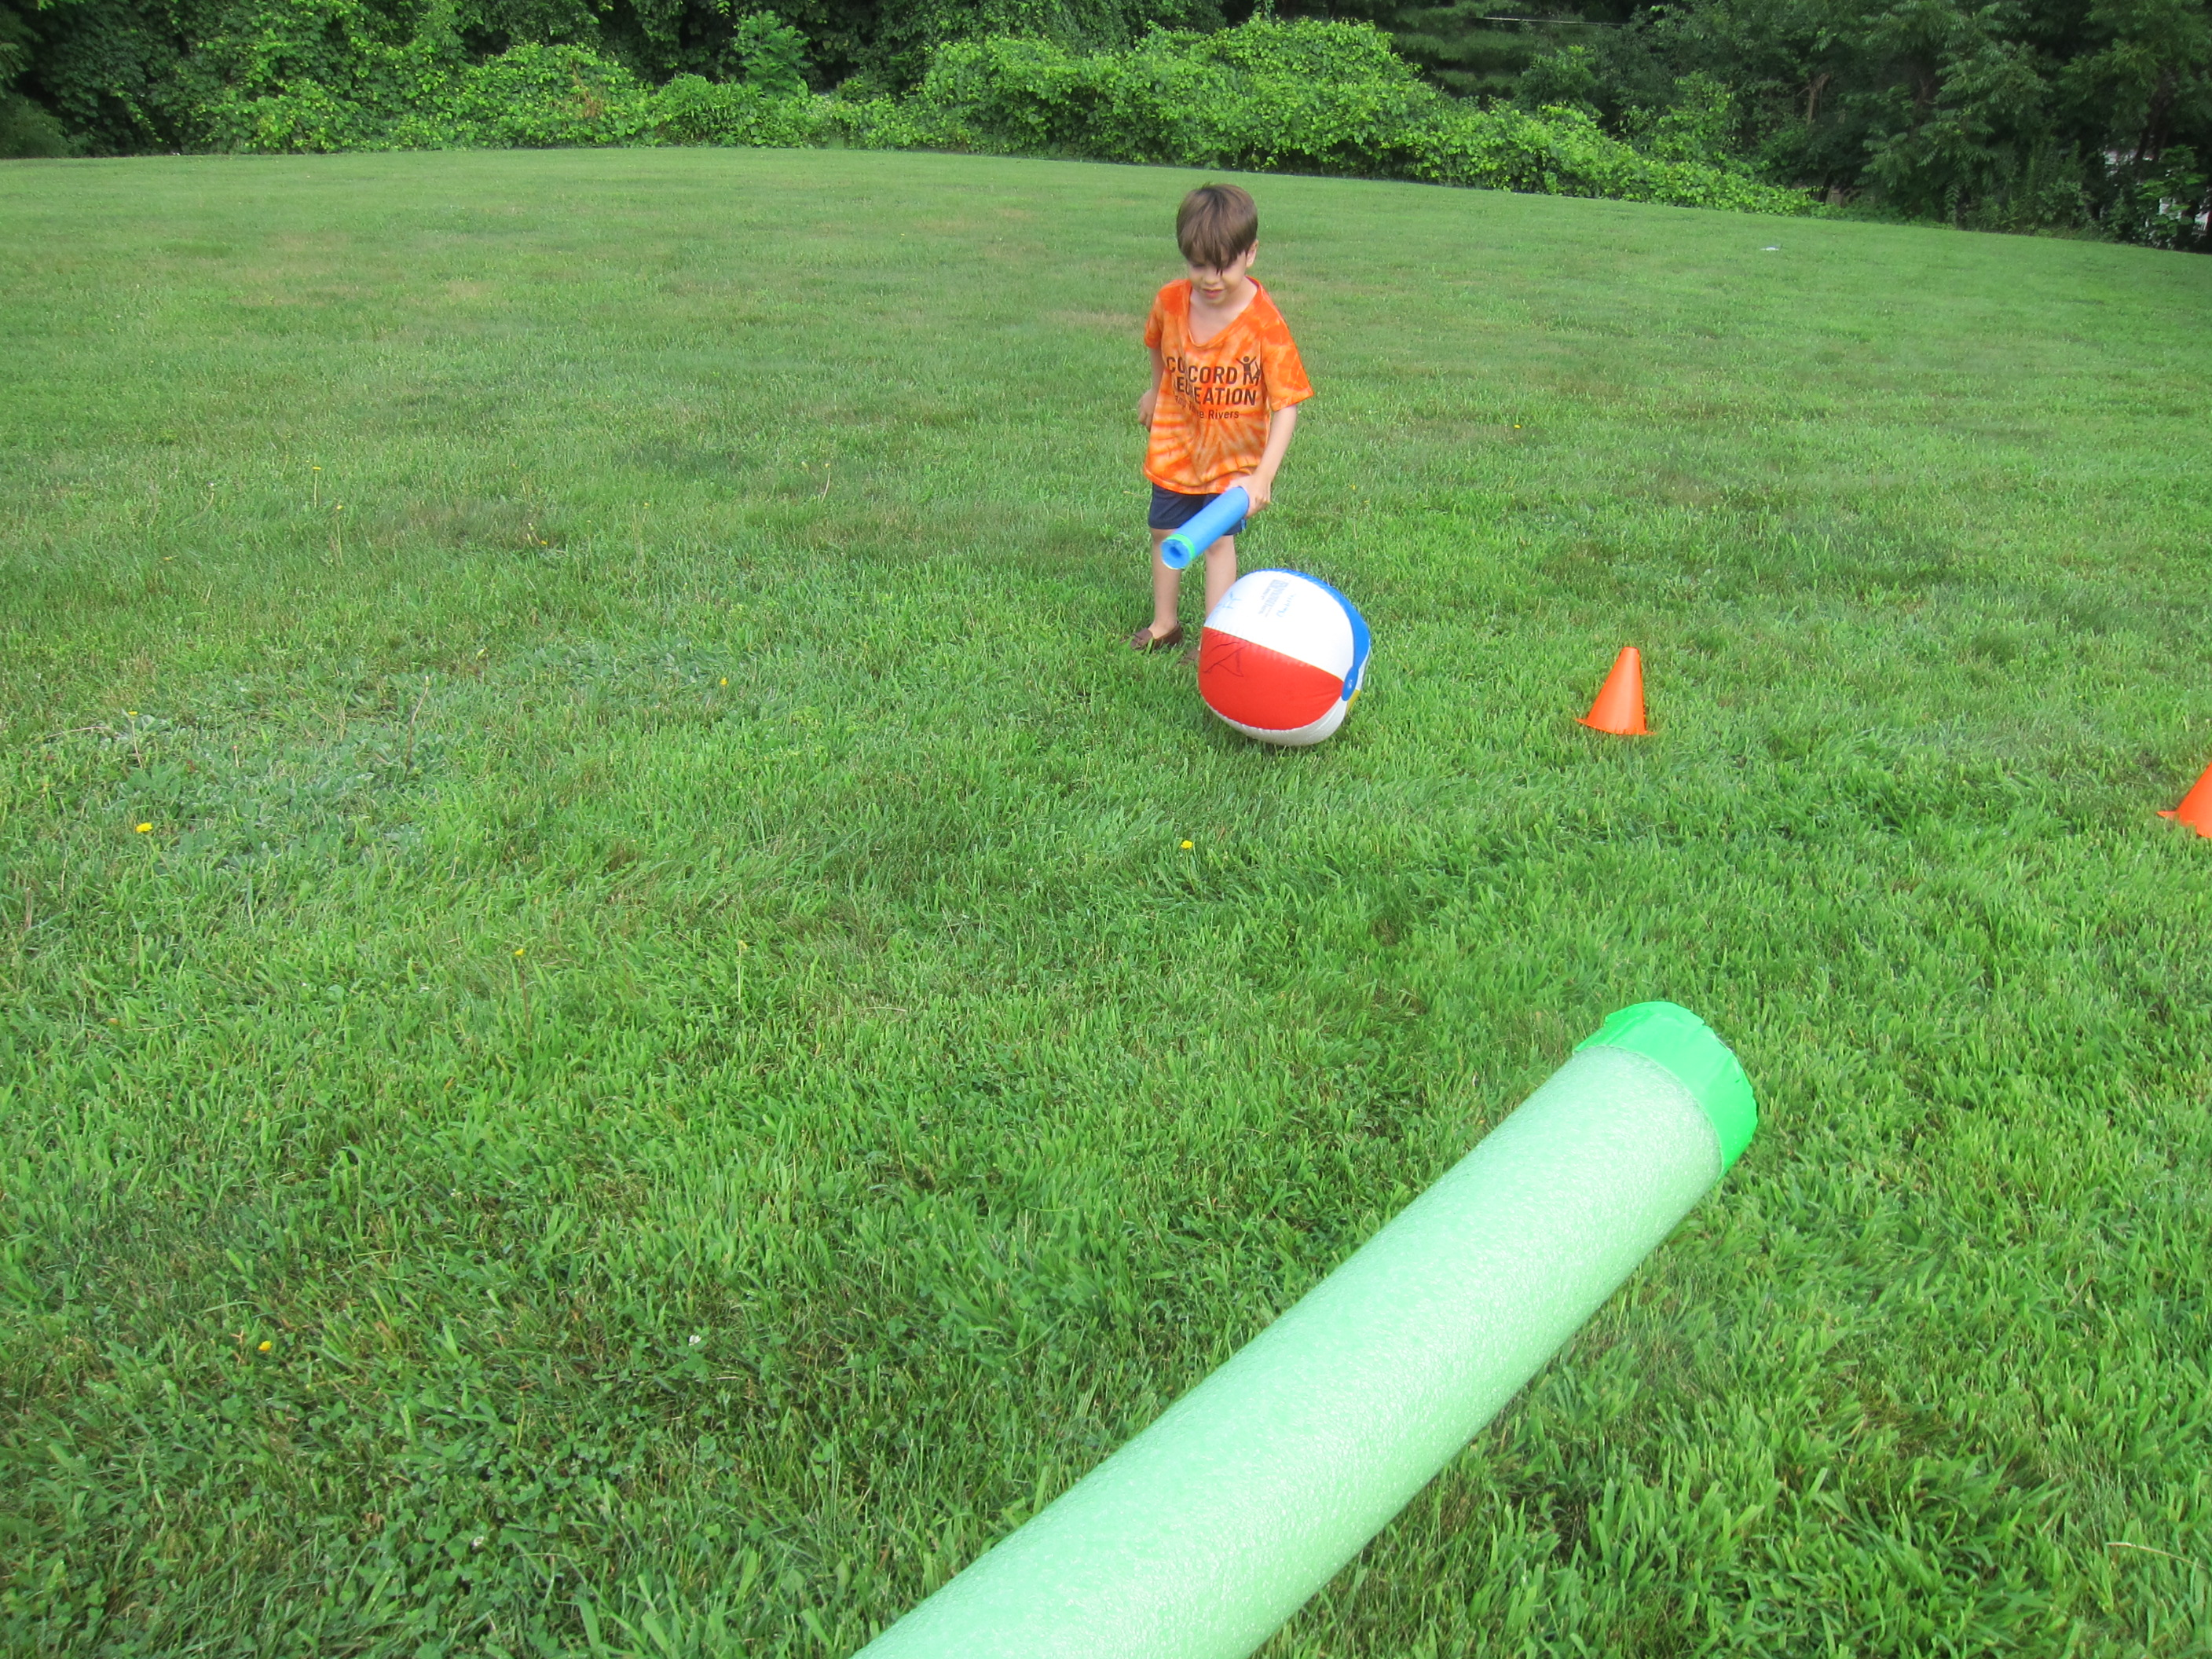 Pool Noodle Hockey (3)